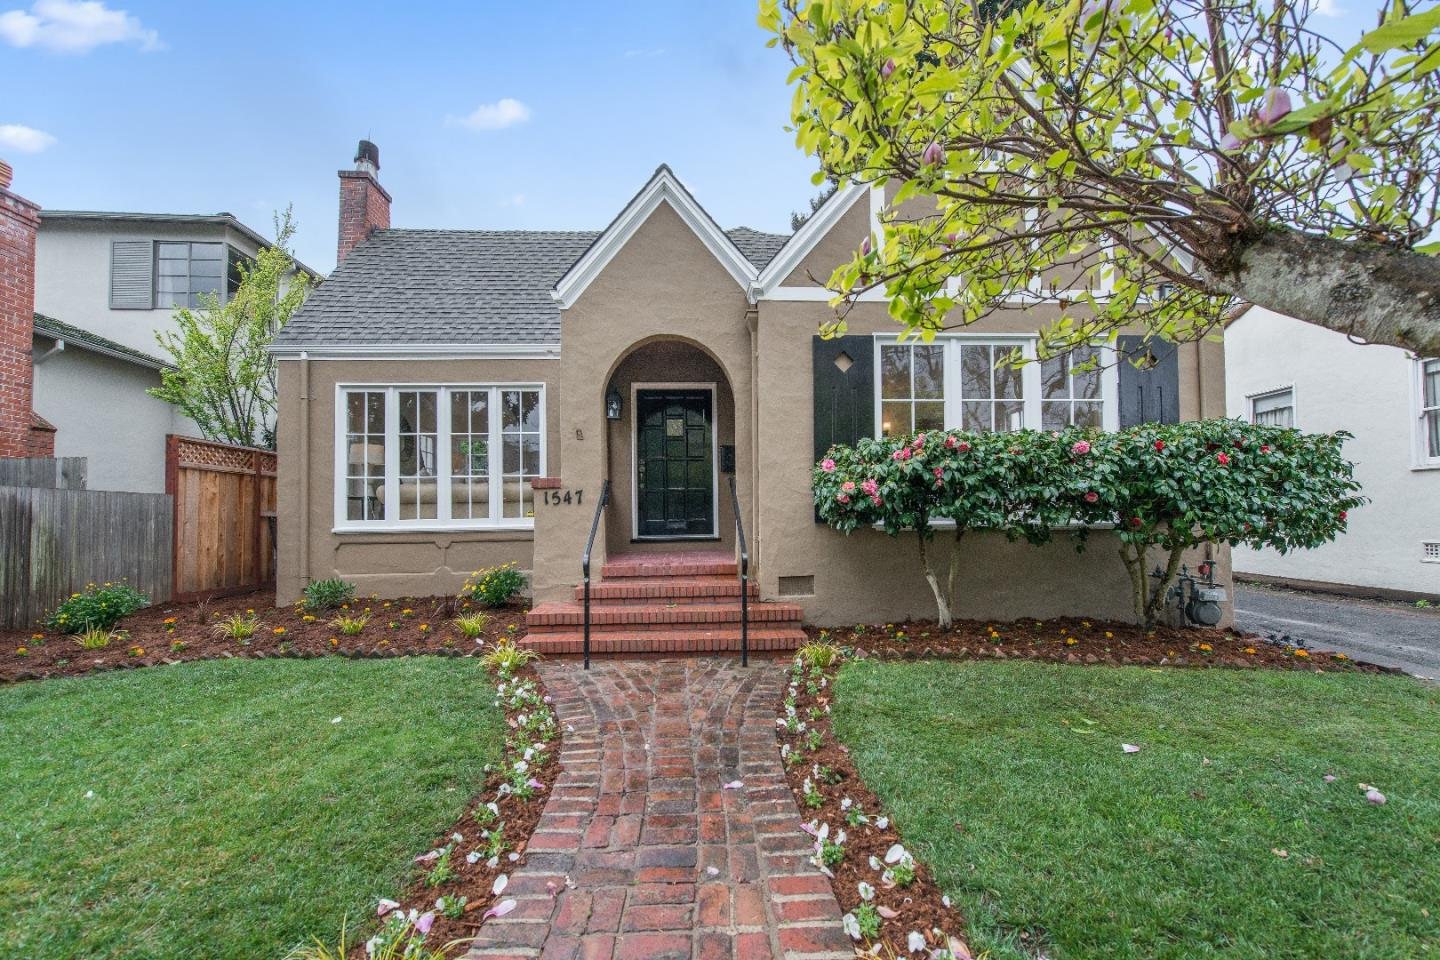 Single Family Home for Sale at 1547 Columbus Avenue 1547 Columbus Avenue Burlingame, California 94010 United States